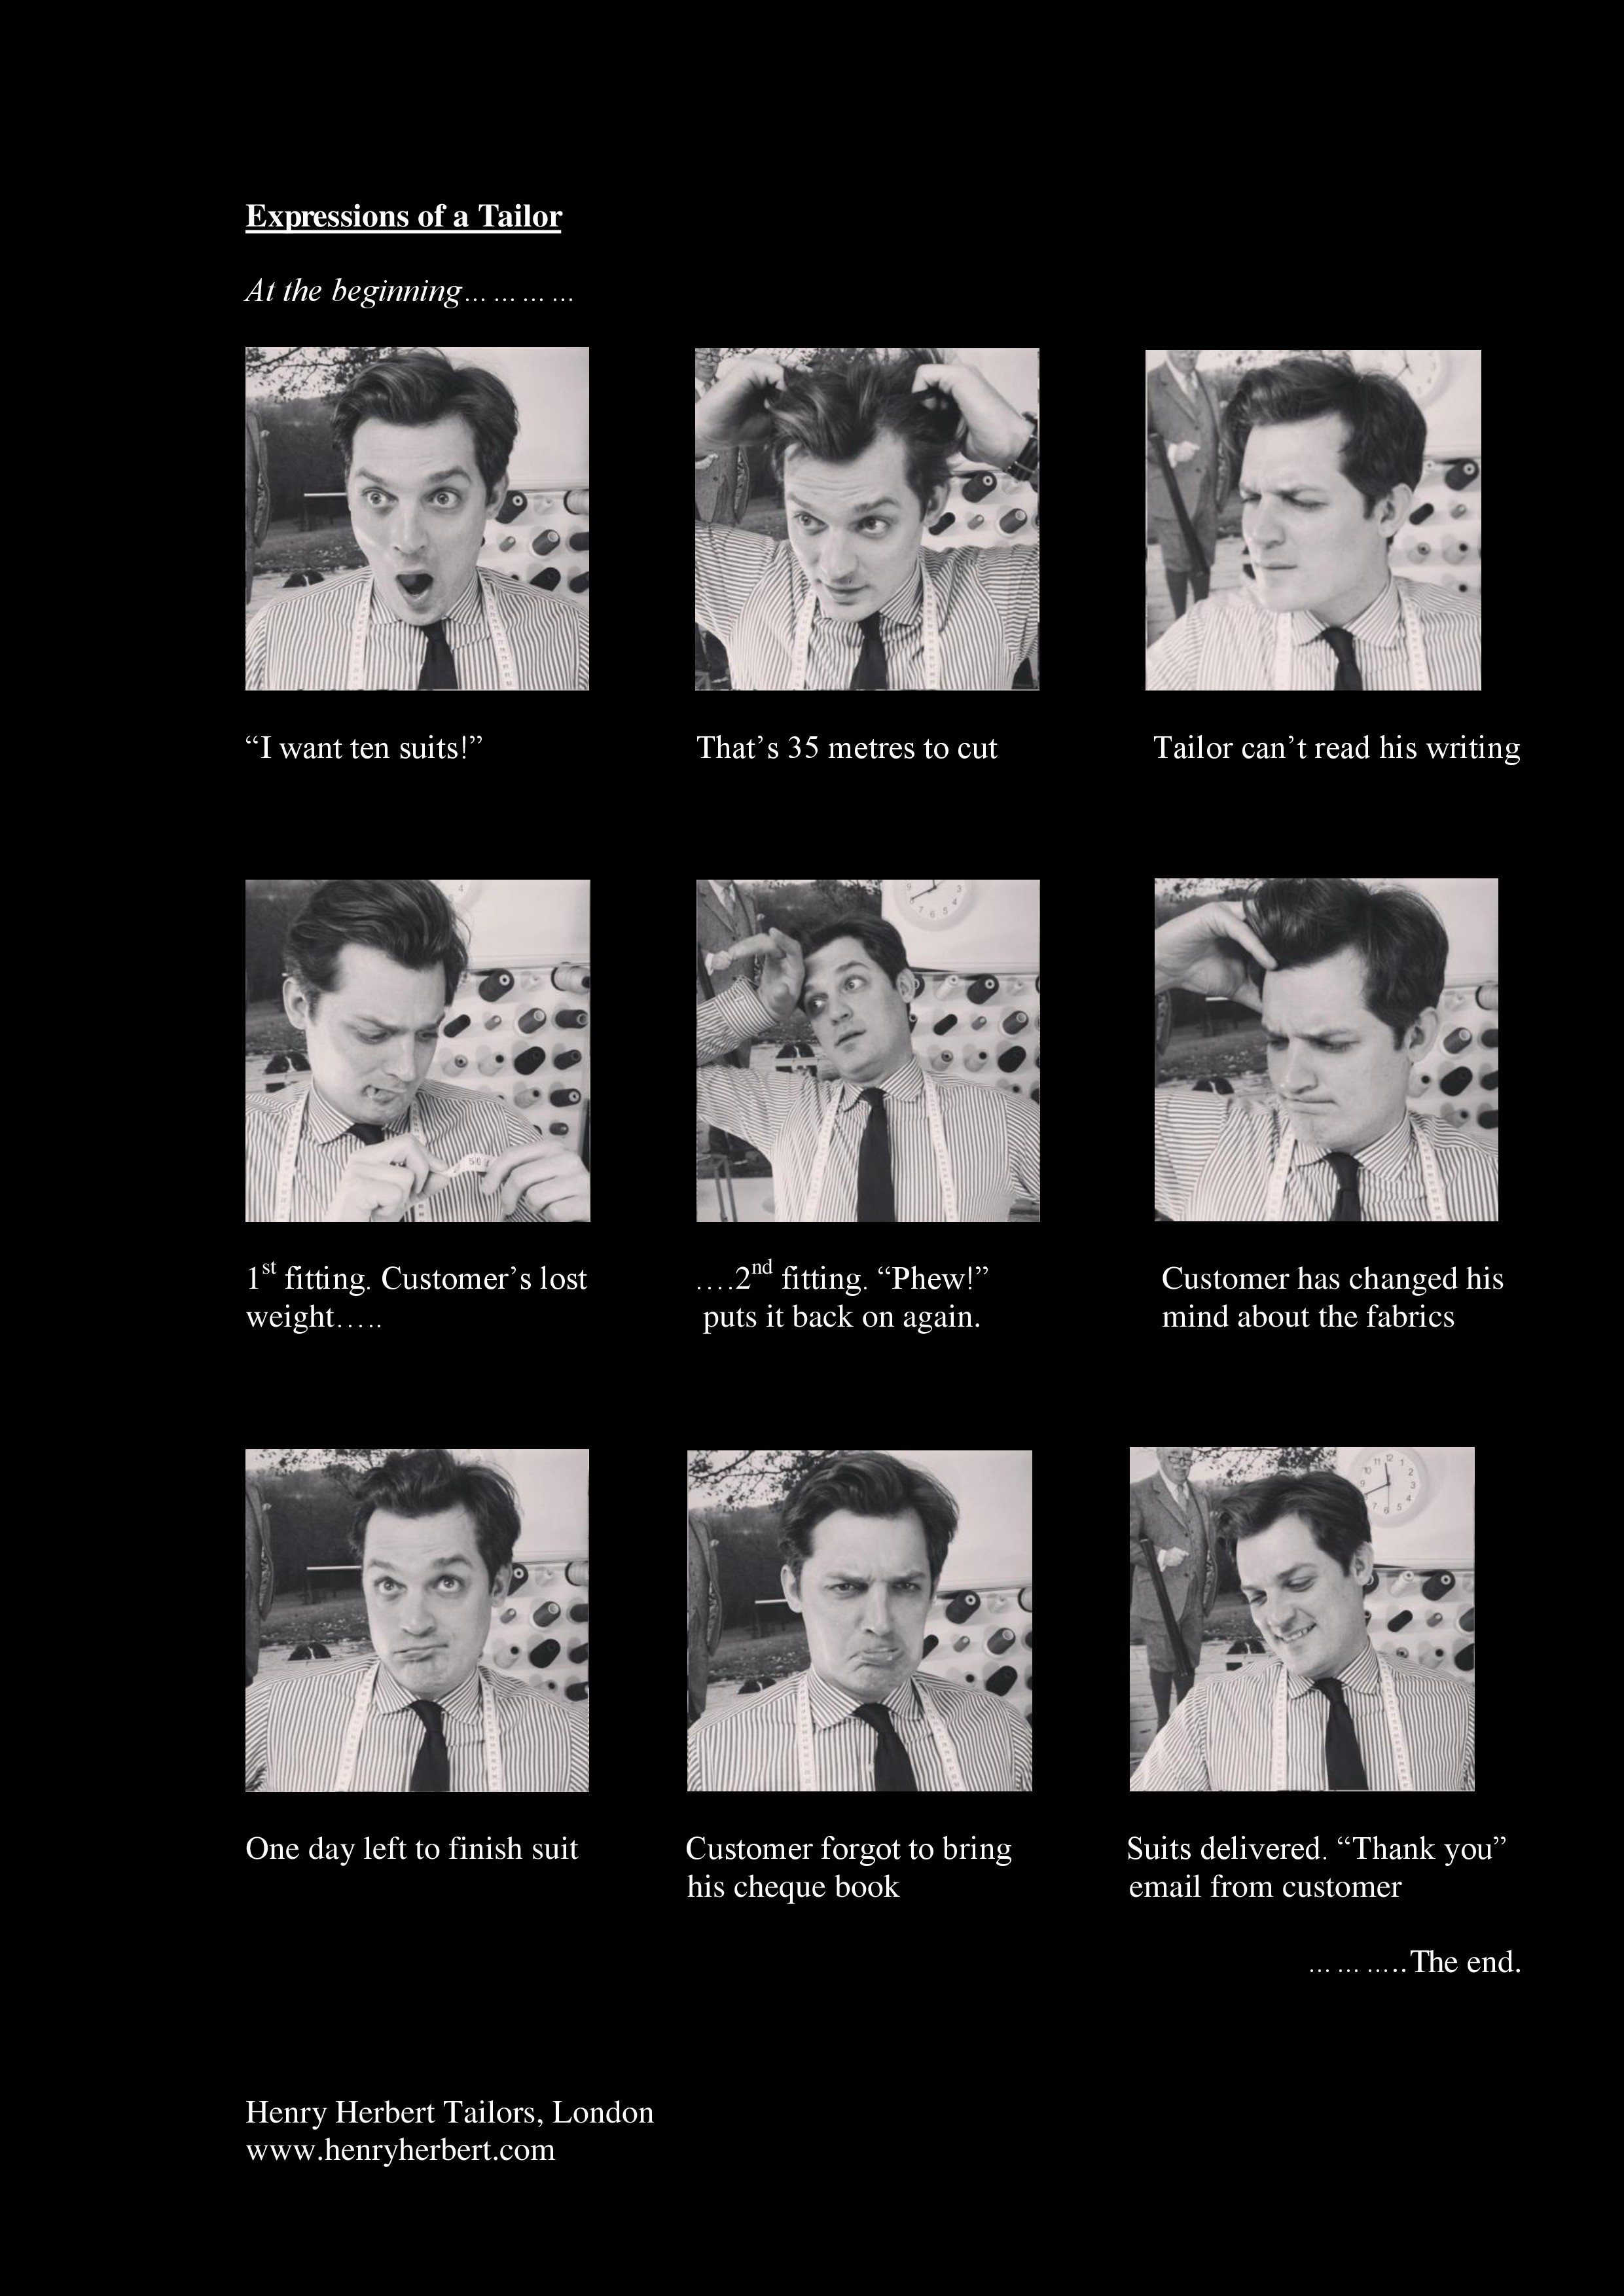 Expressions of a Tailor